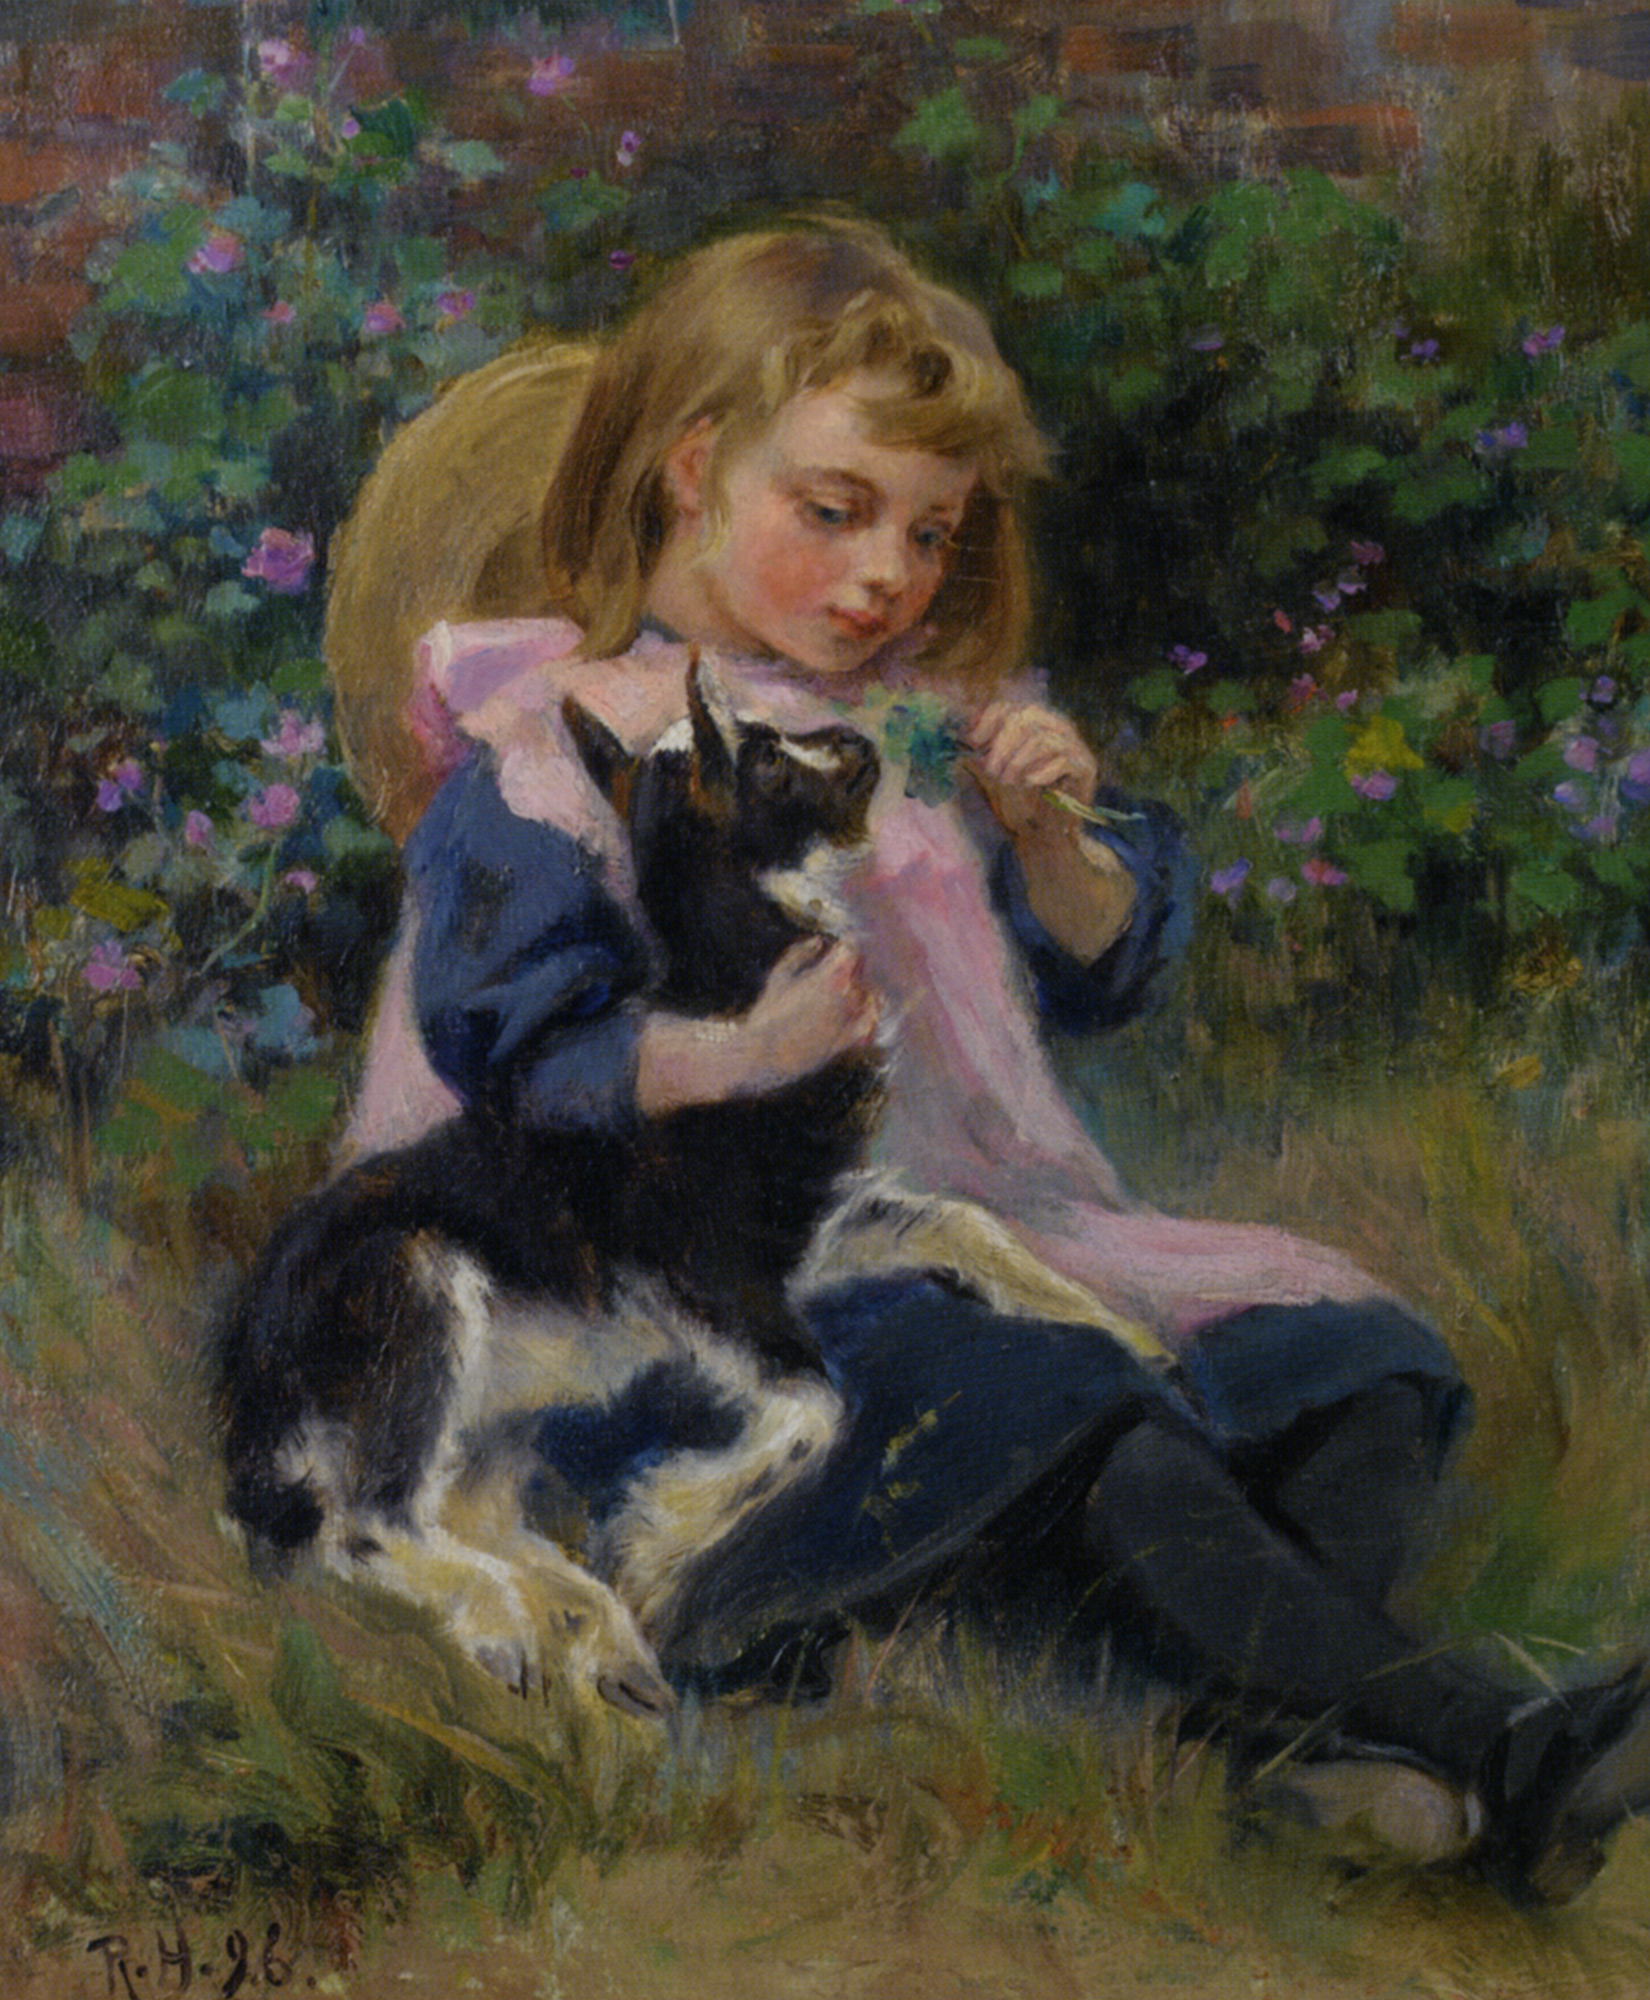 Friends :: Ralph Hedley - Portraits of young girls in art and painting ôîòî